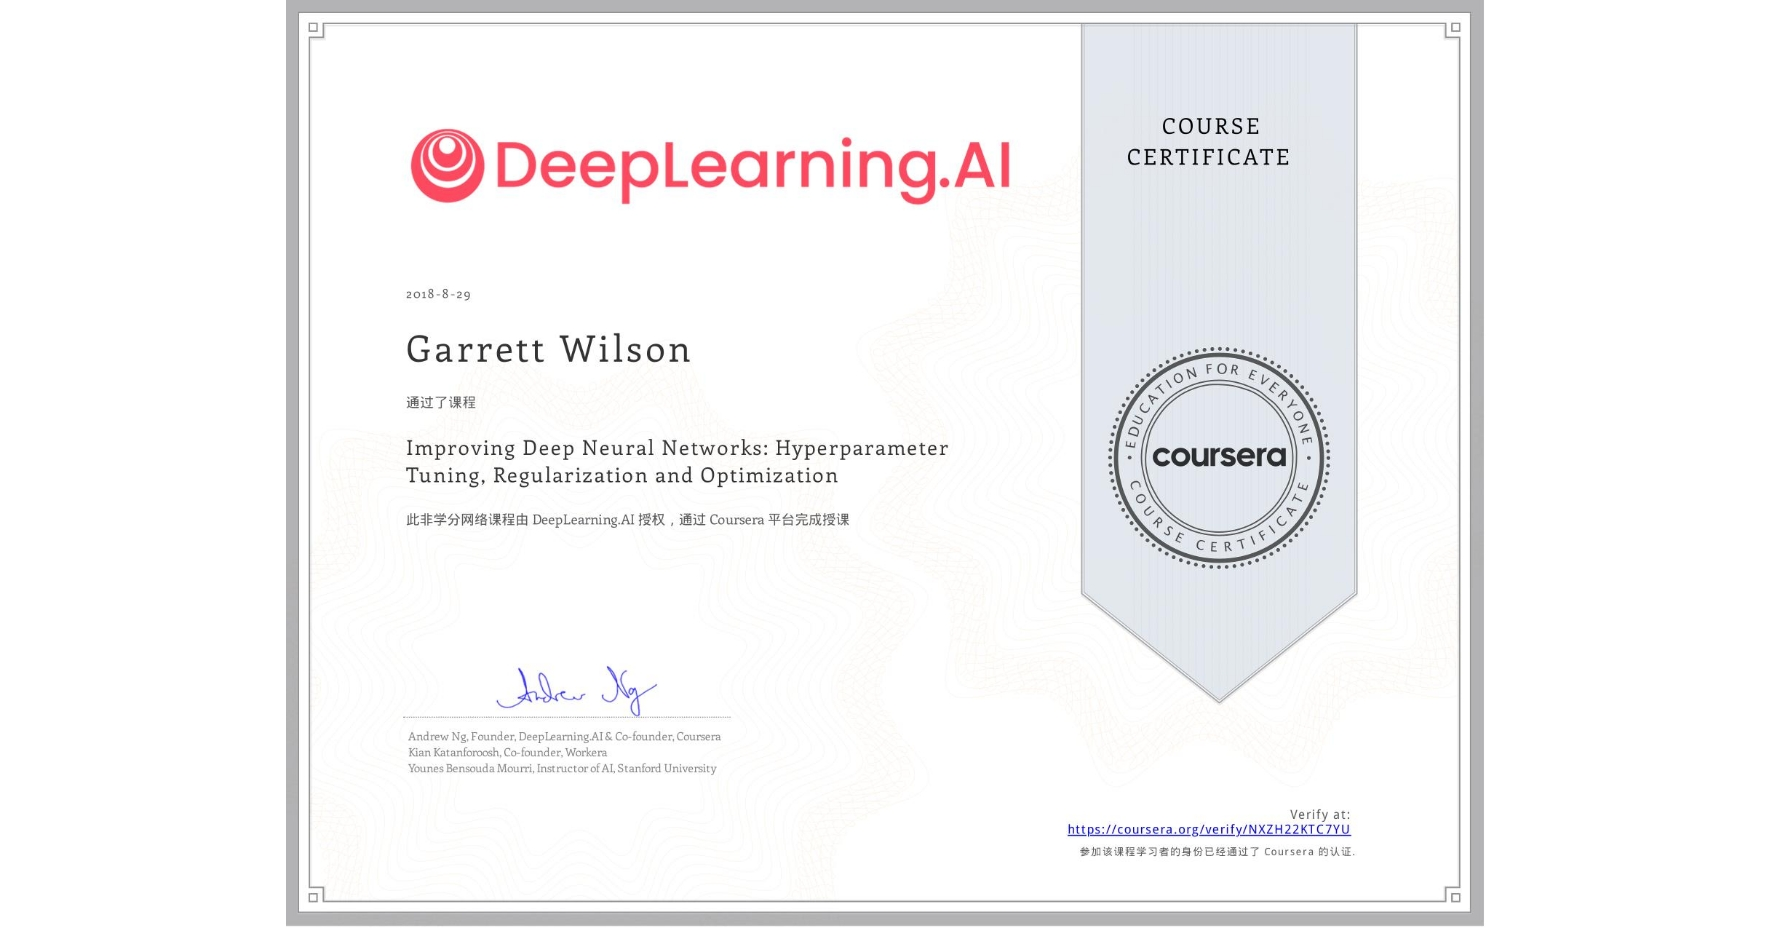 View certificate for Garrett Wilson, Improving Deep Neural Networks: Hyperparameter Tuning, Regularization and Optimization, an online non-credit course authorized by DeepLearning.AI and offered through Coursera